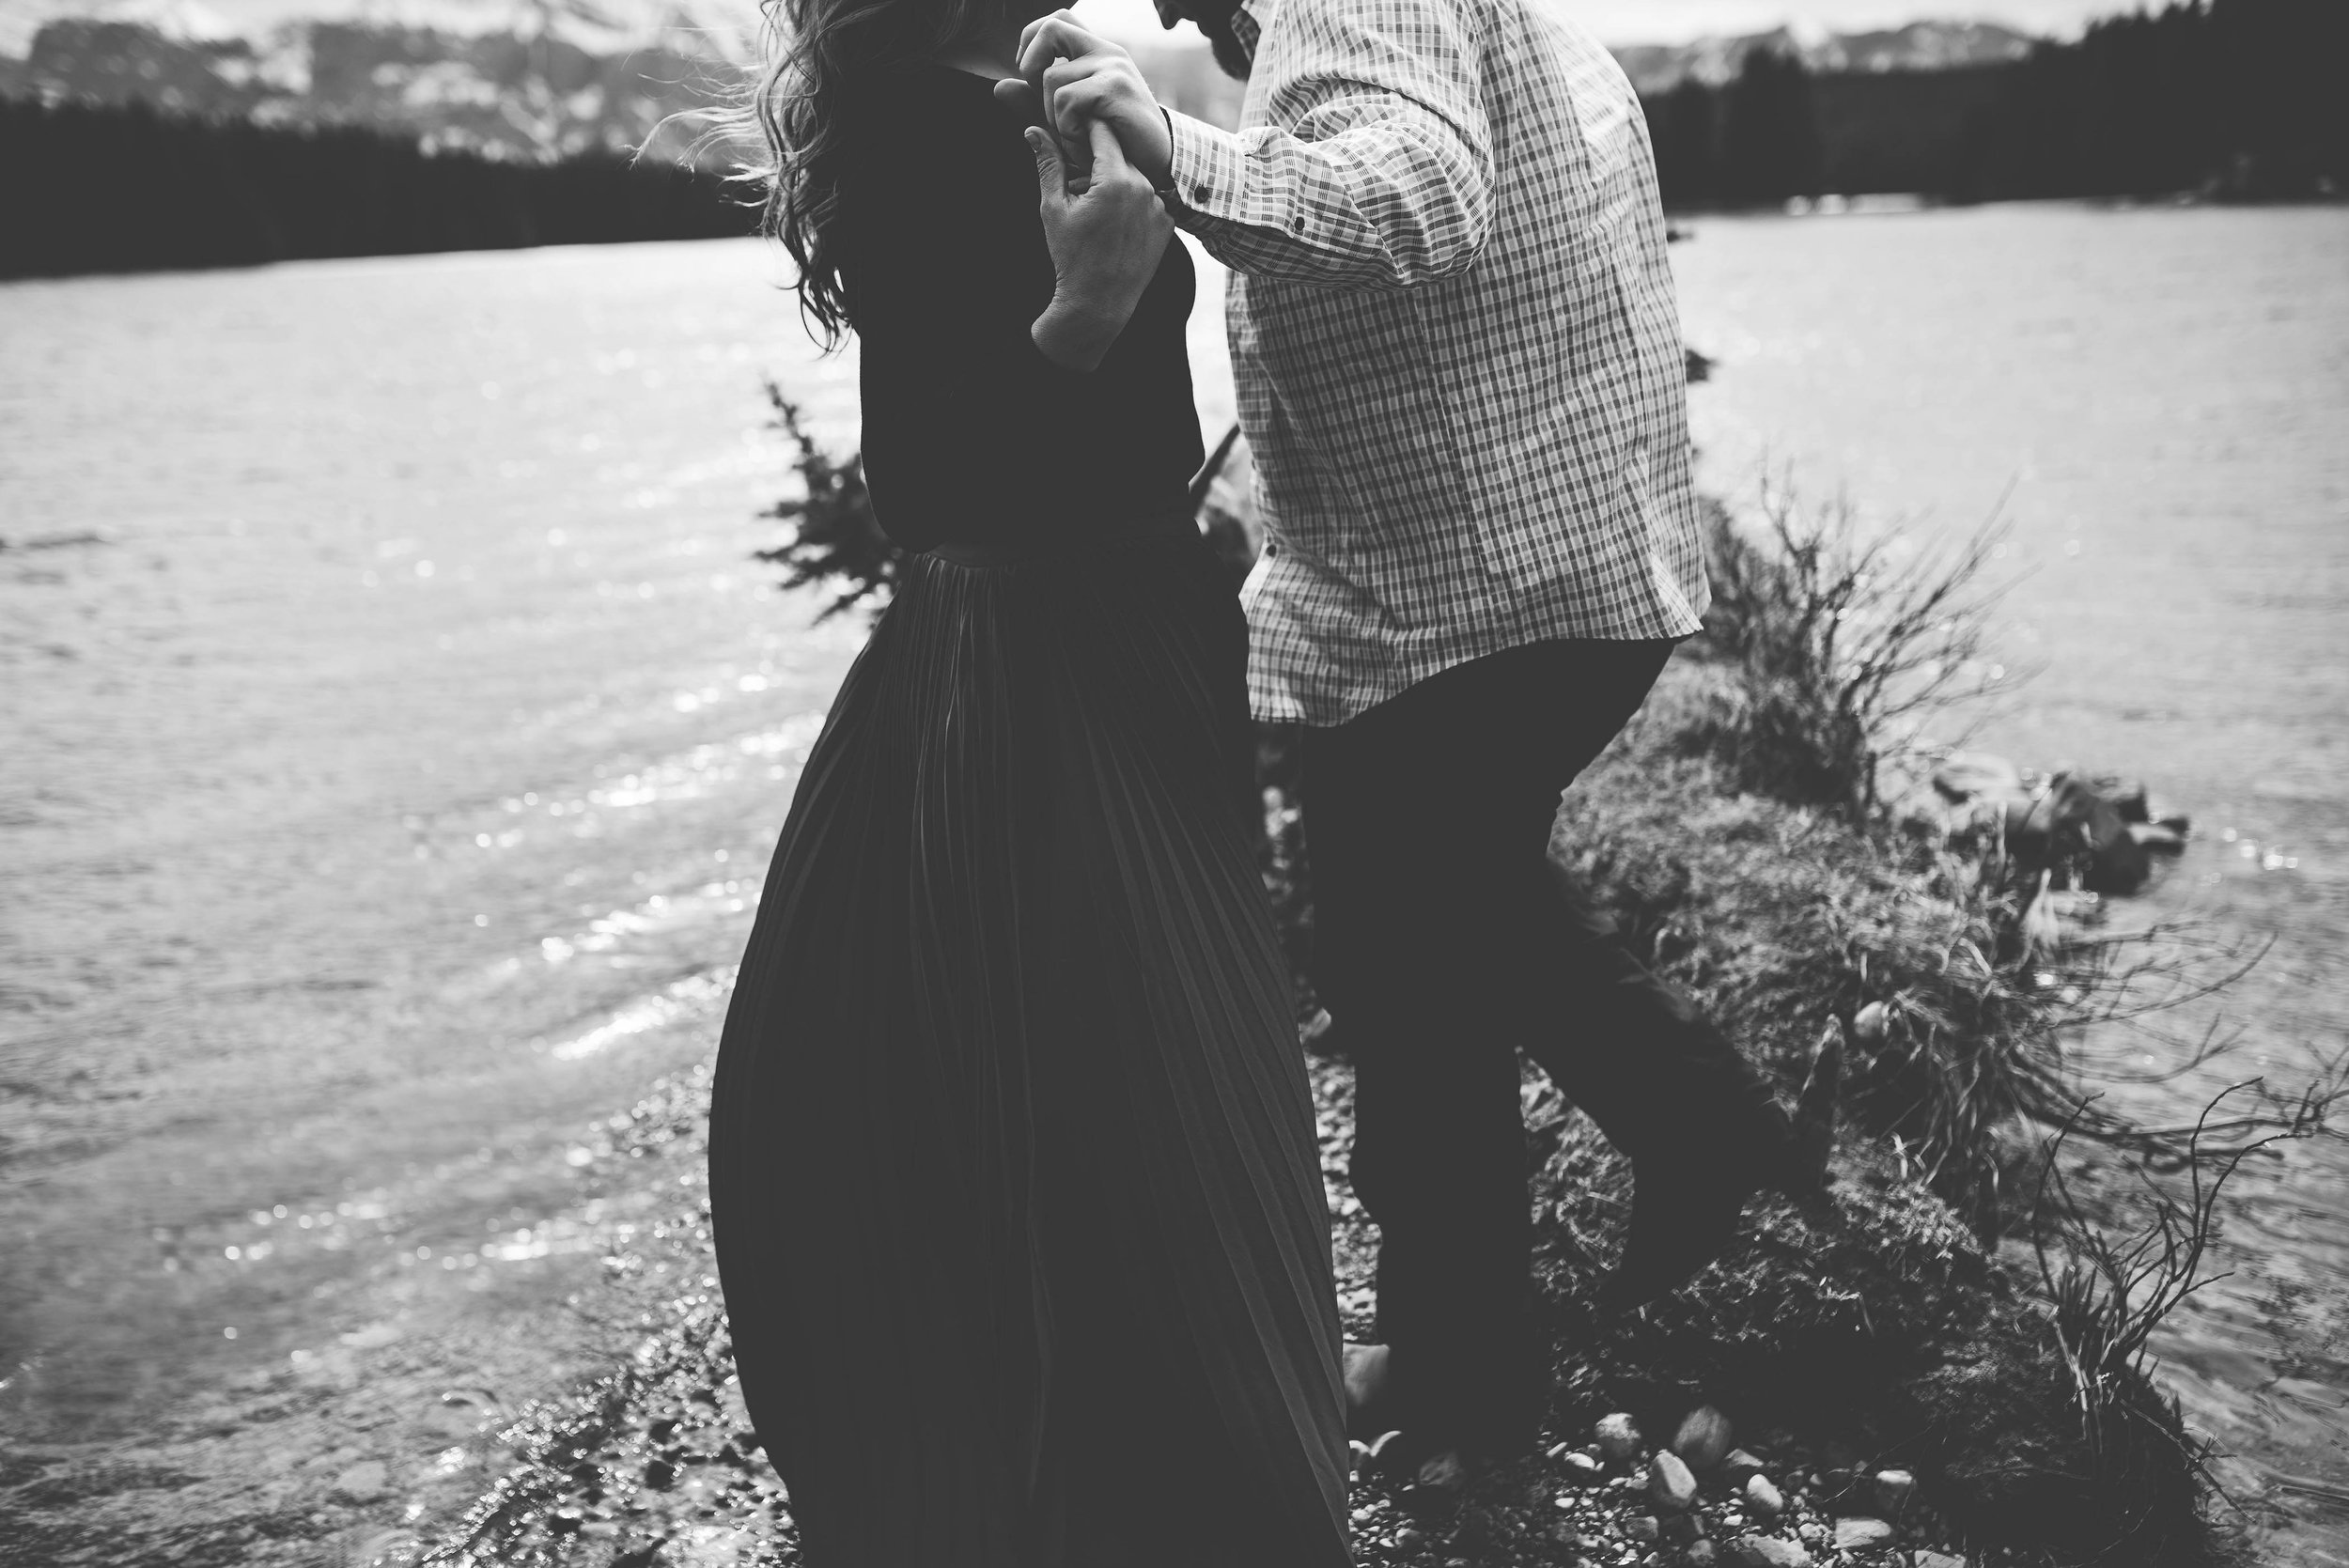 Isaiah-&-Taylor-Photography---Matt-&-Lindsay-Engagement-074.jpg